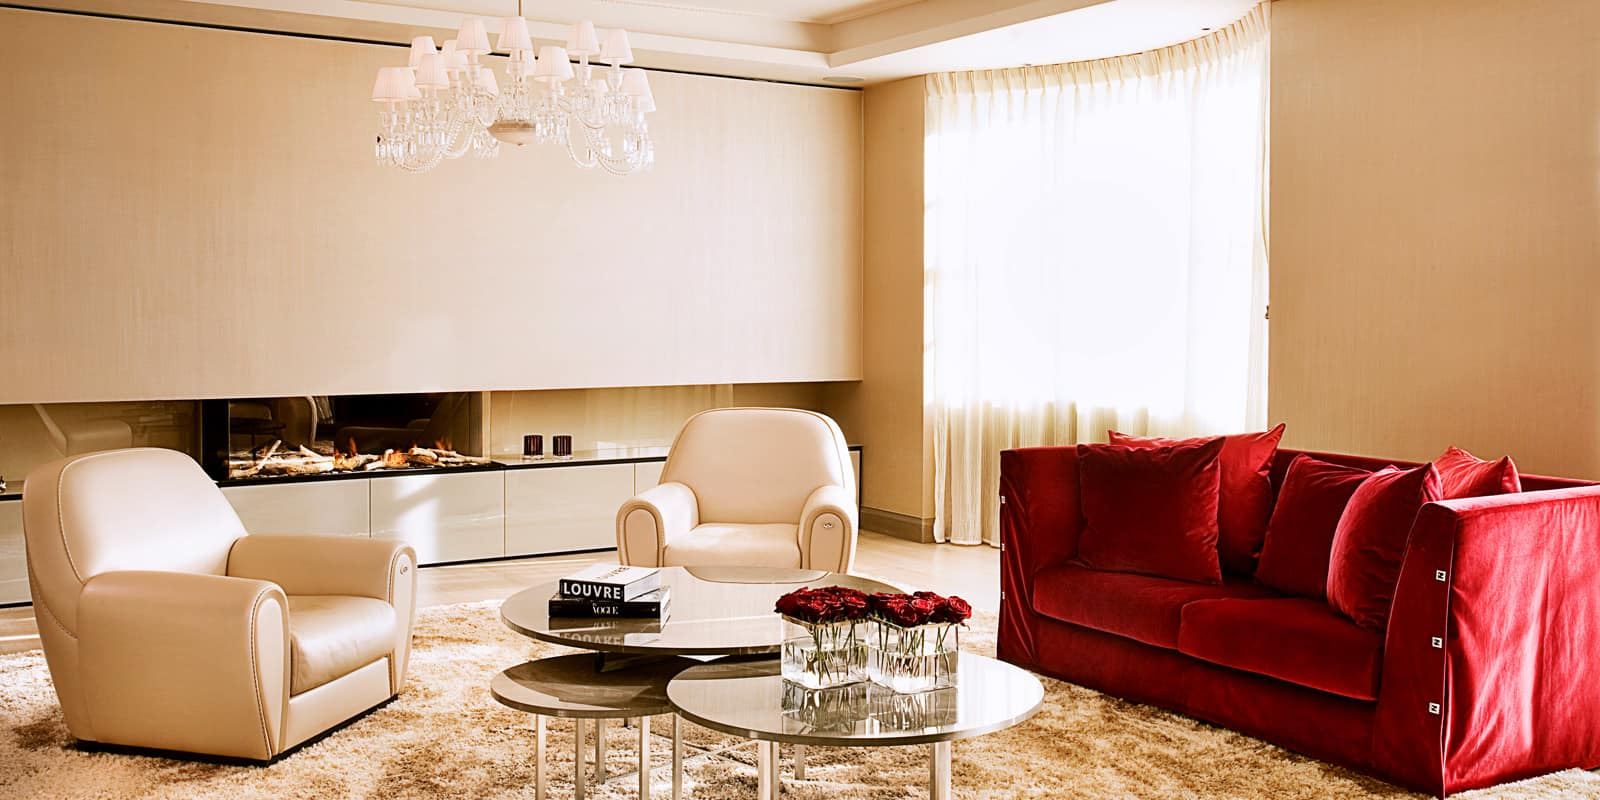 Luxurious living room with royal red sofa